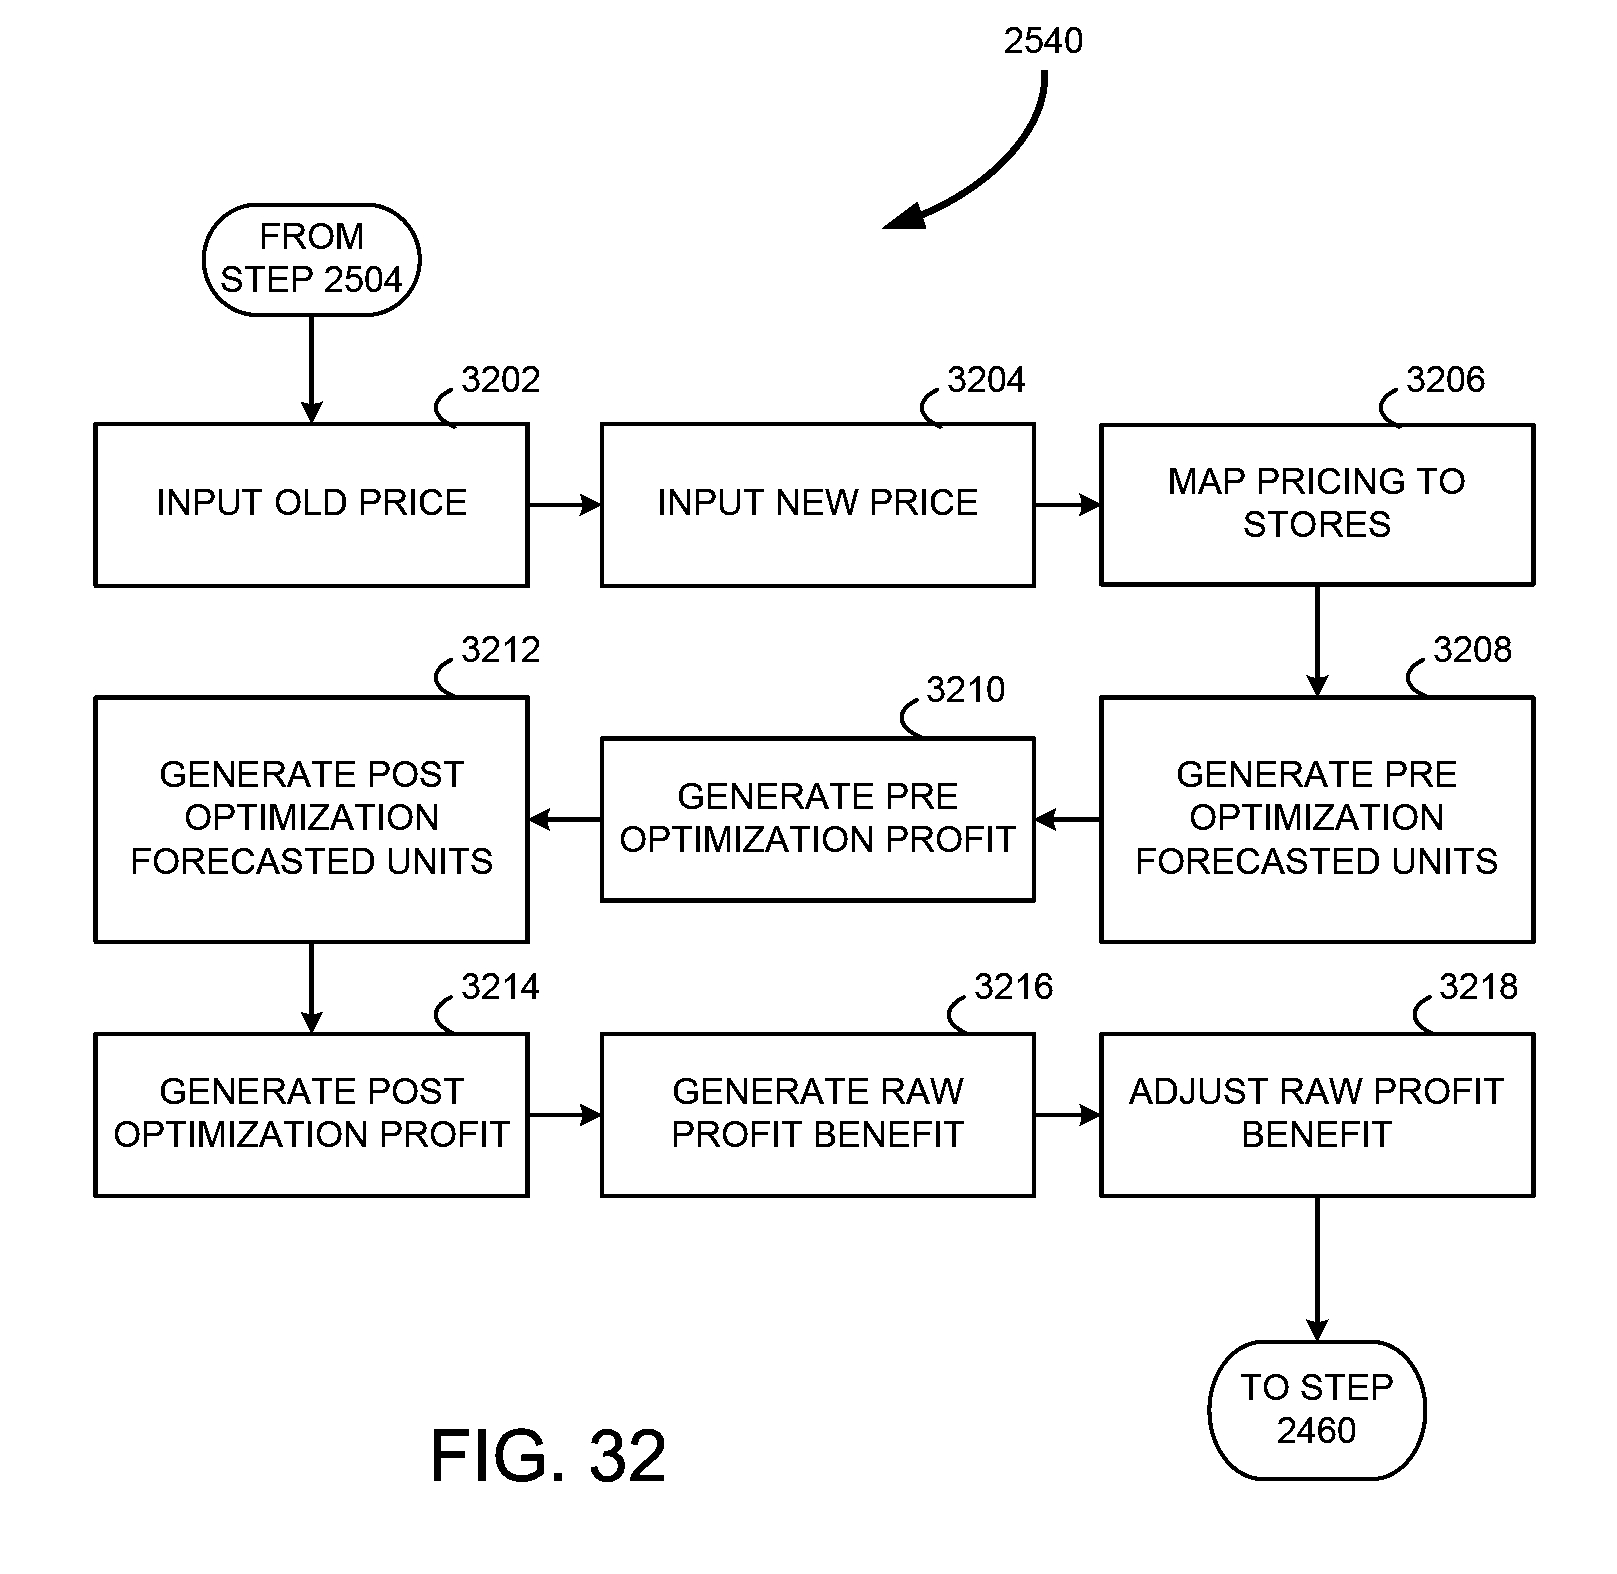 Us8140381b1 System And Method For Forecasting Price Optimization 3204 Cat Engine Diagram Benefits In Retail Stores Utilizing Back Casting Decomposition Analysis Google